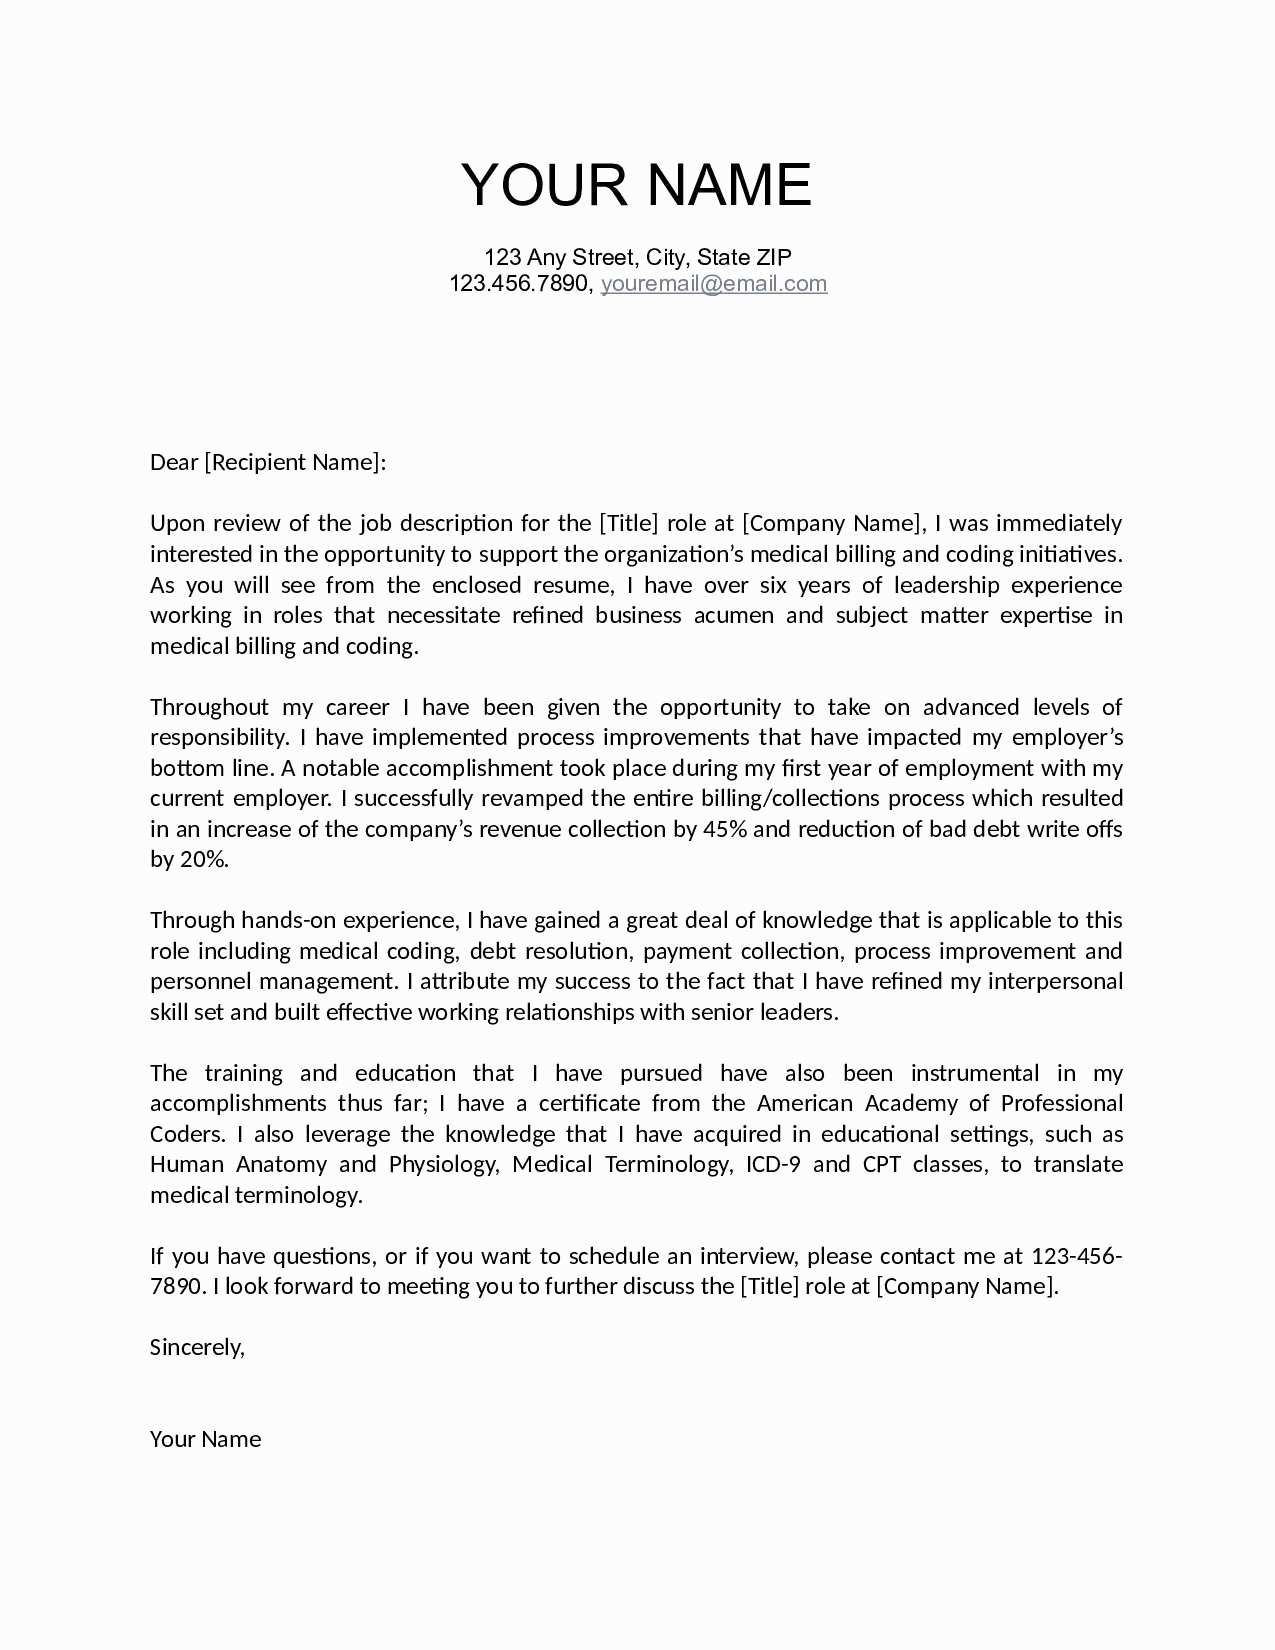 Esa Template Letter Collection | Letter Template Collection